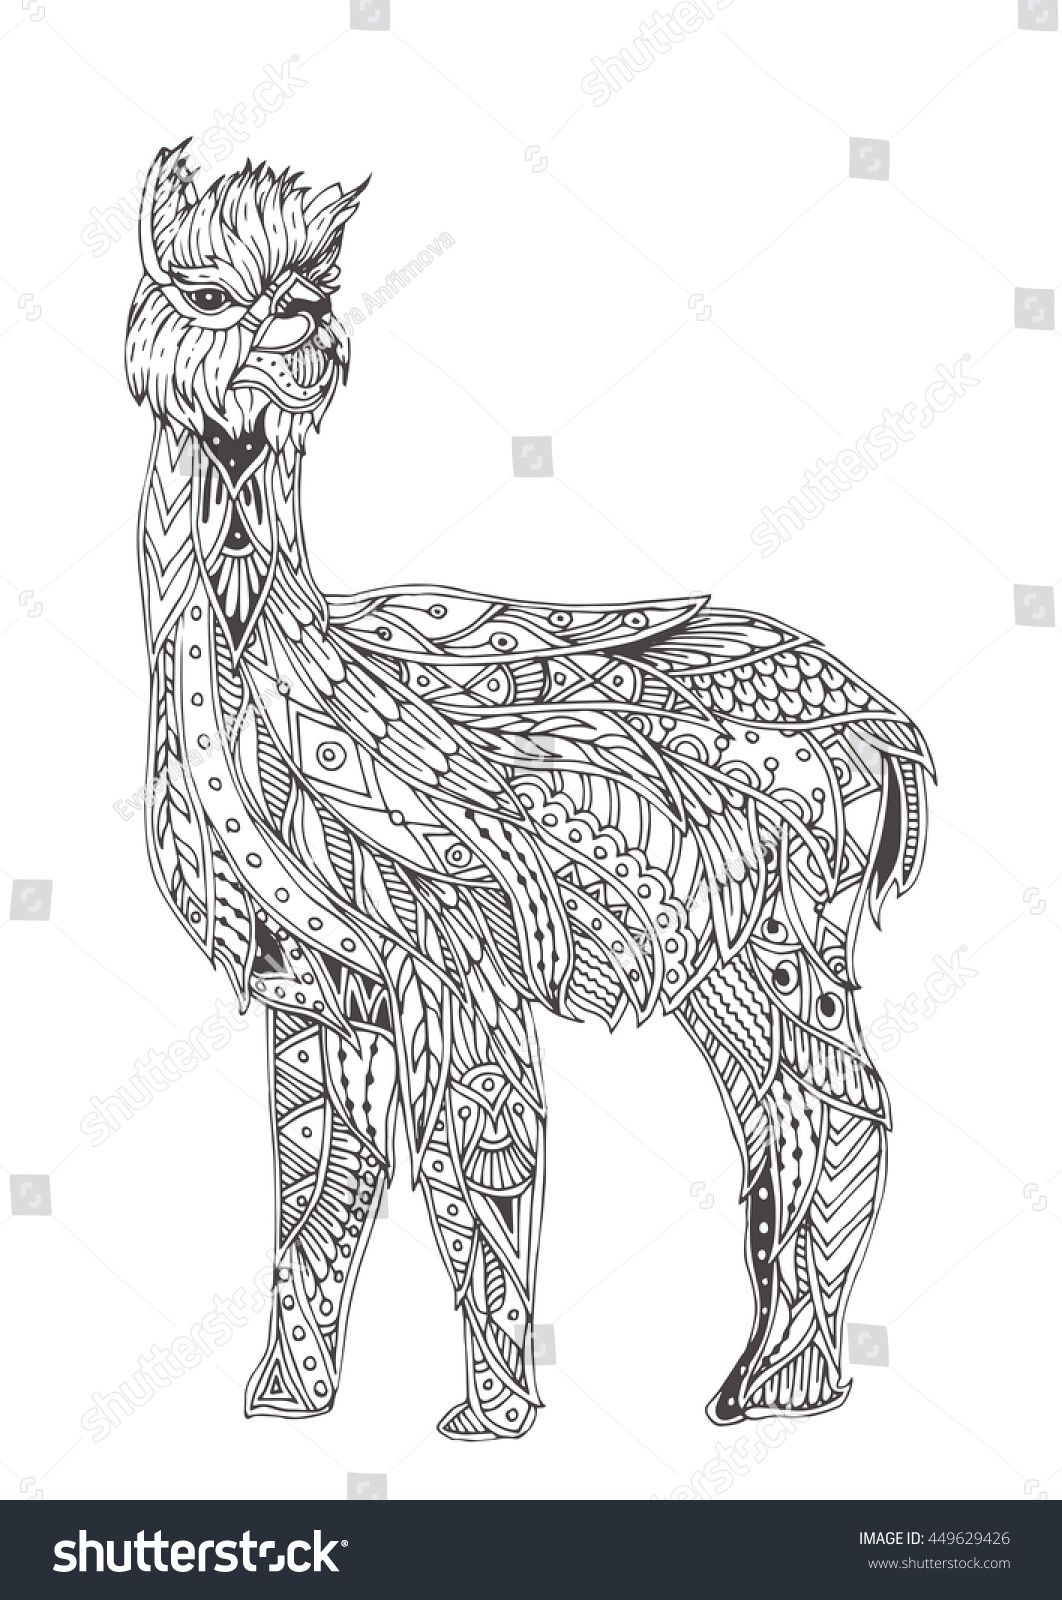 Handdrawn alpaca with ethnic floral doodle pattern Coloring page